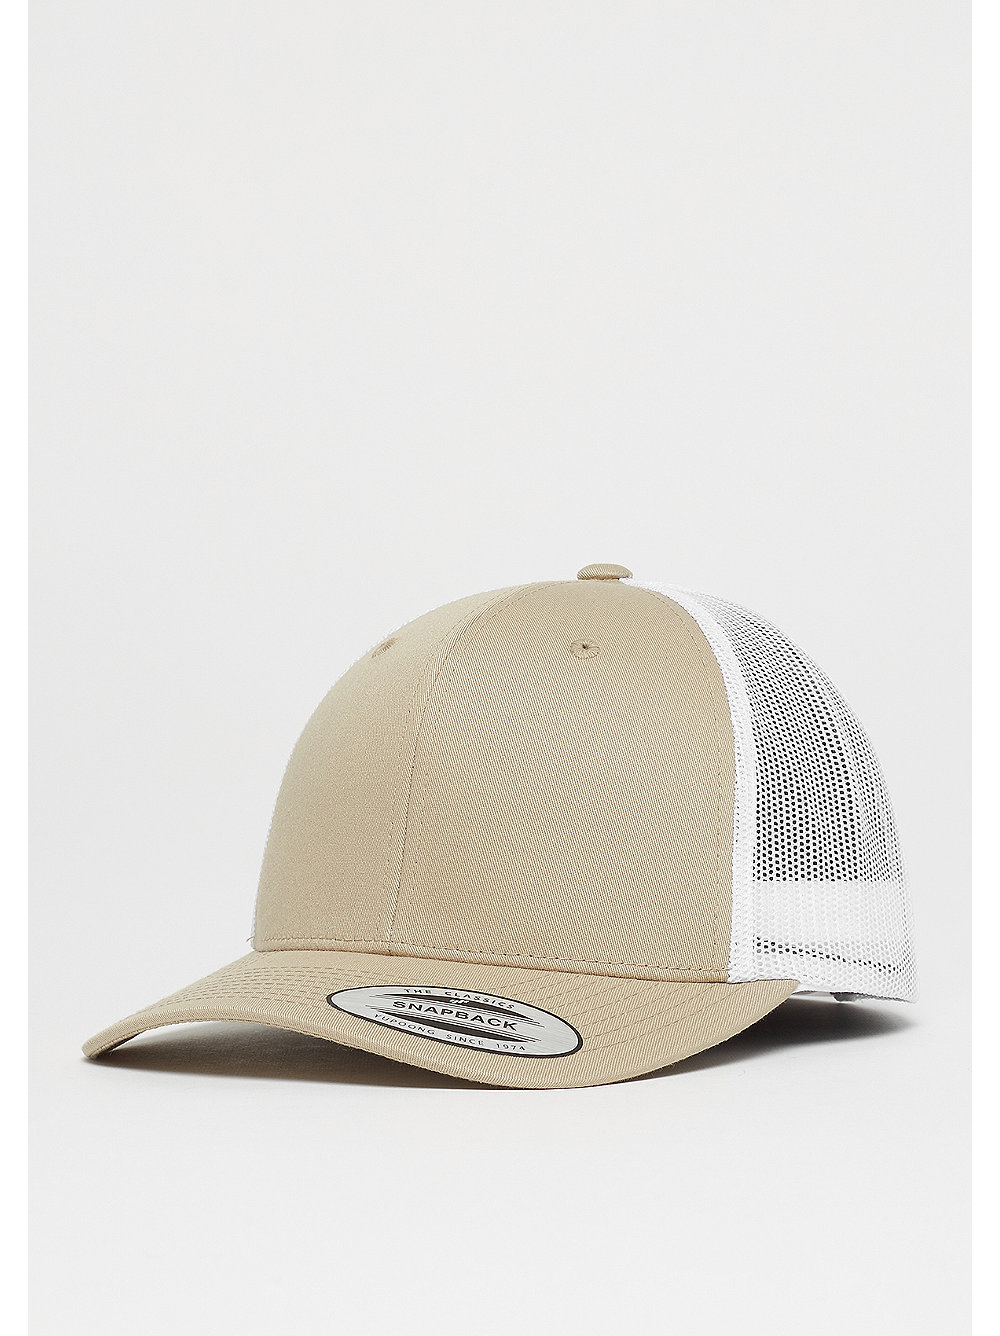 Flexfit Retro Trucker 2-Tone khaki/white